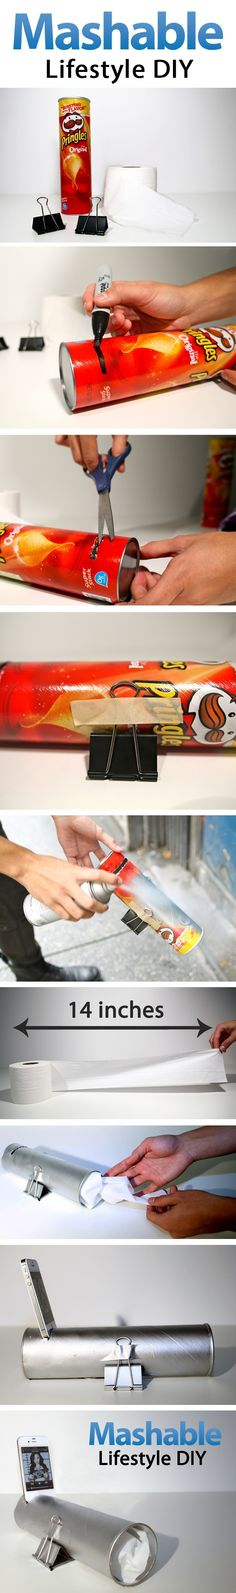 DIY Pringles Step By Step Speakers